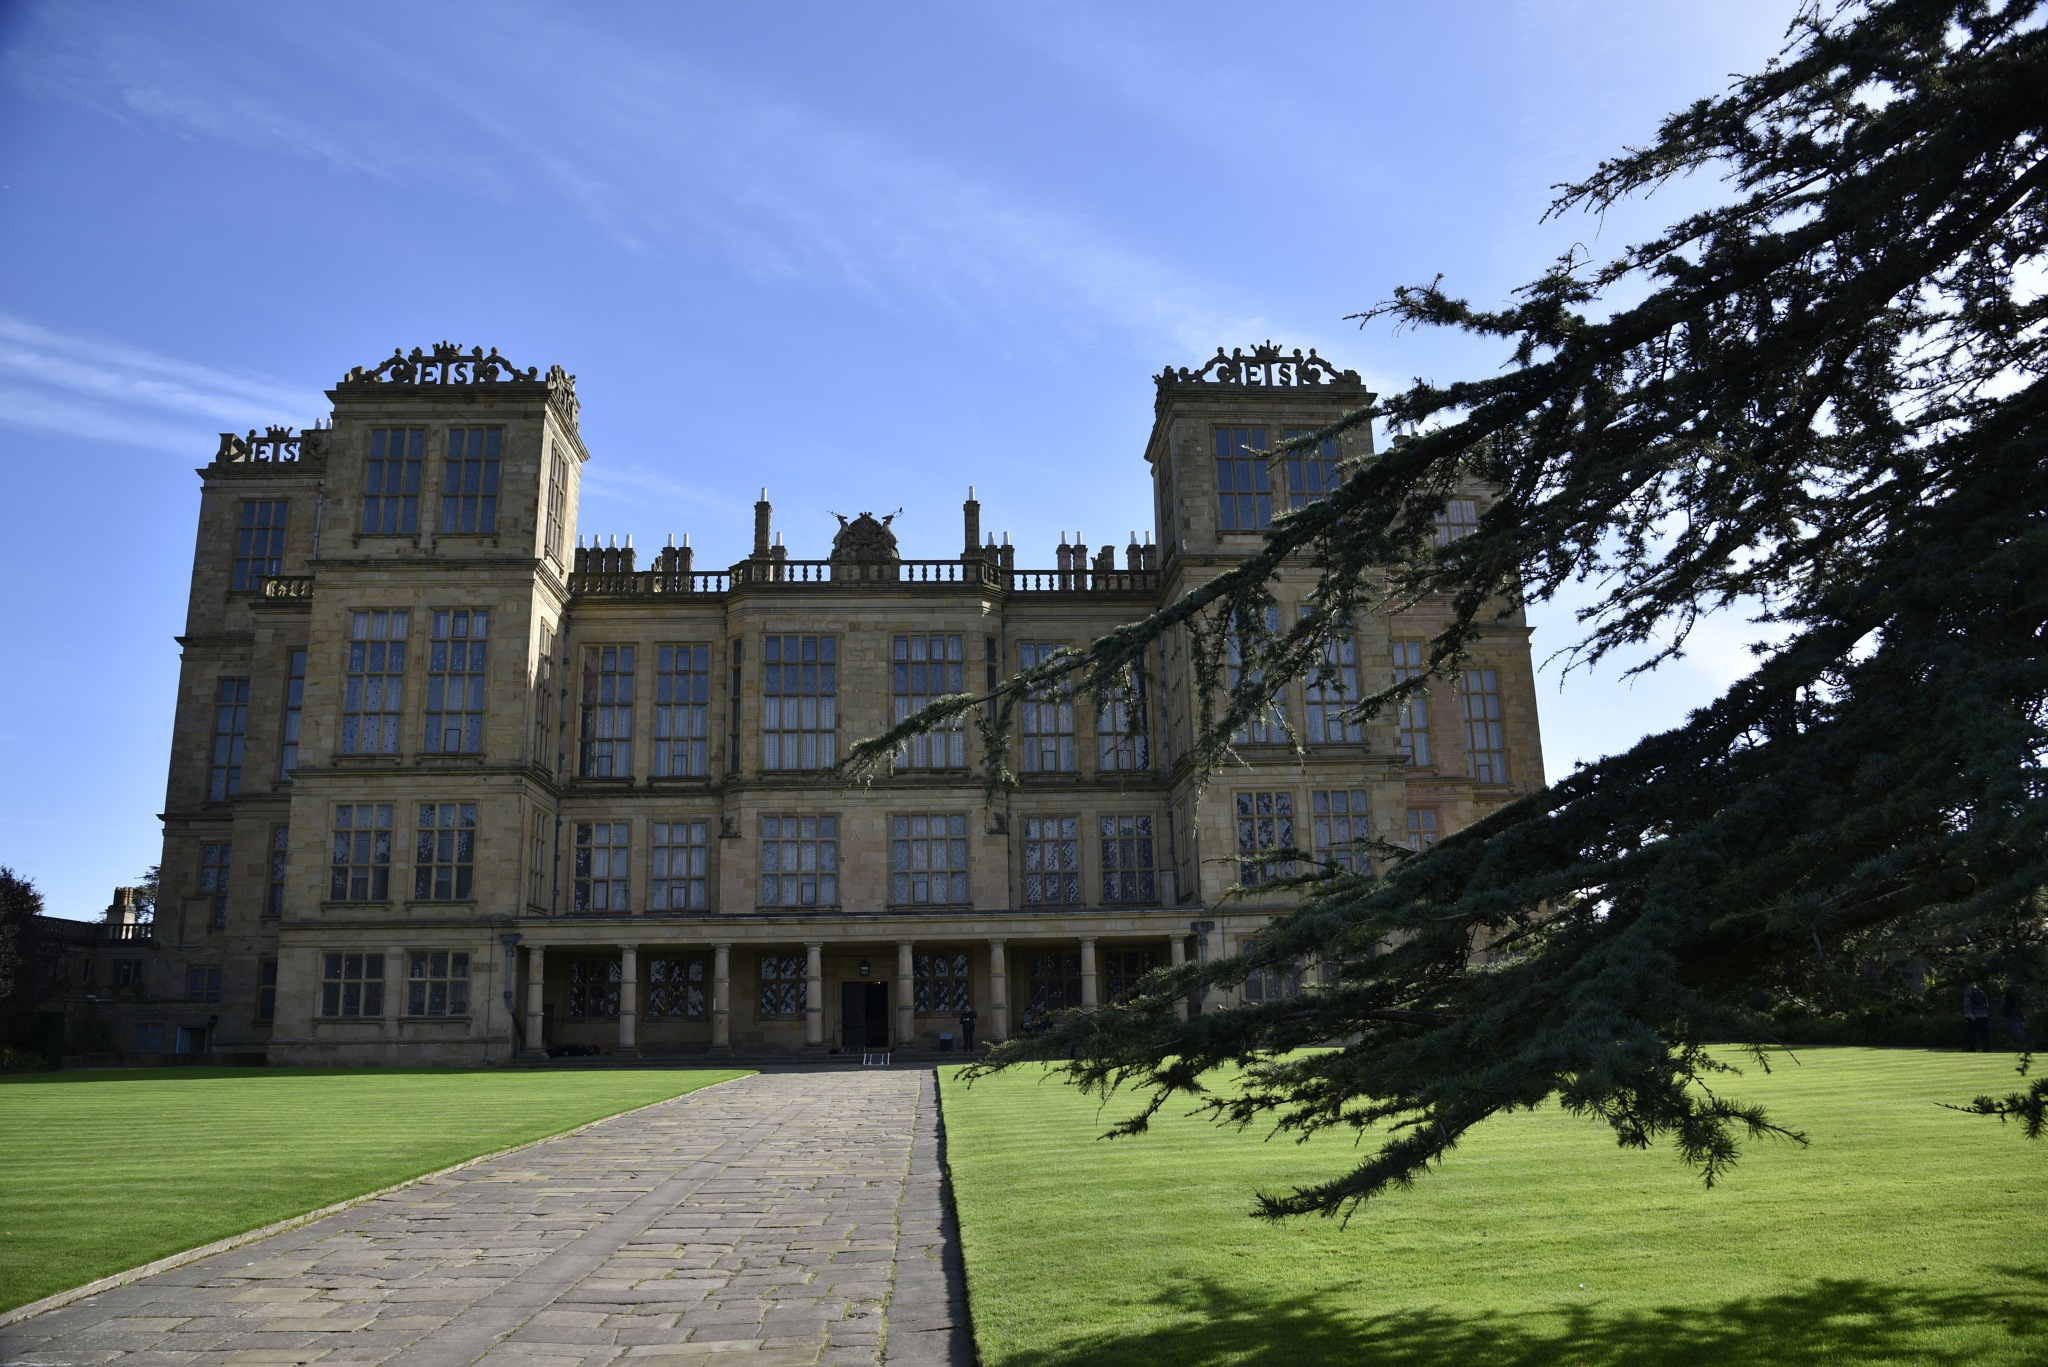 Hardwick Hall by John Cater